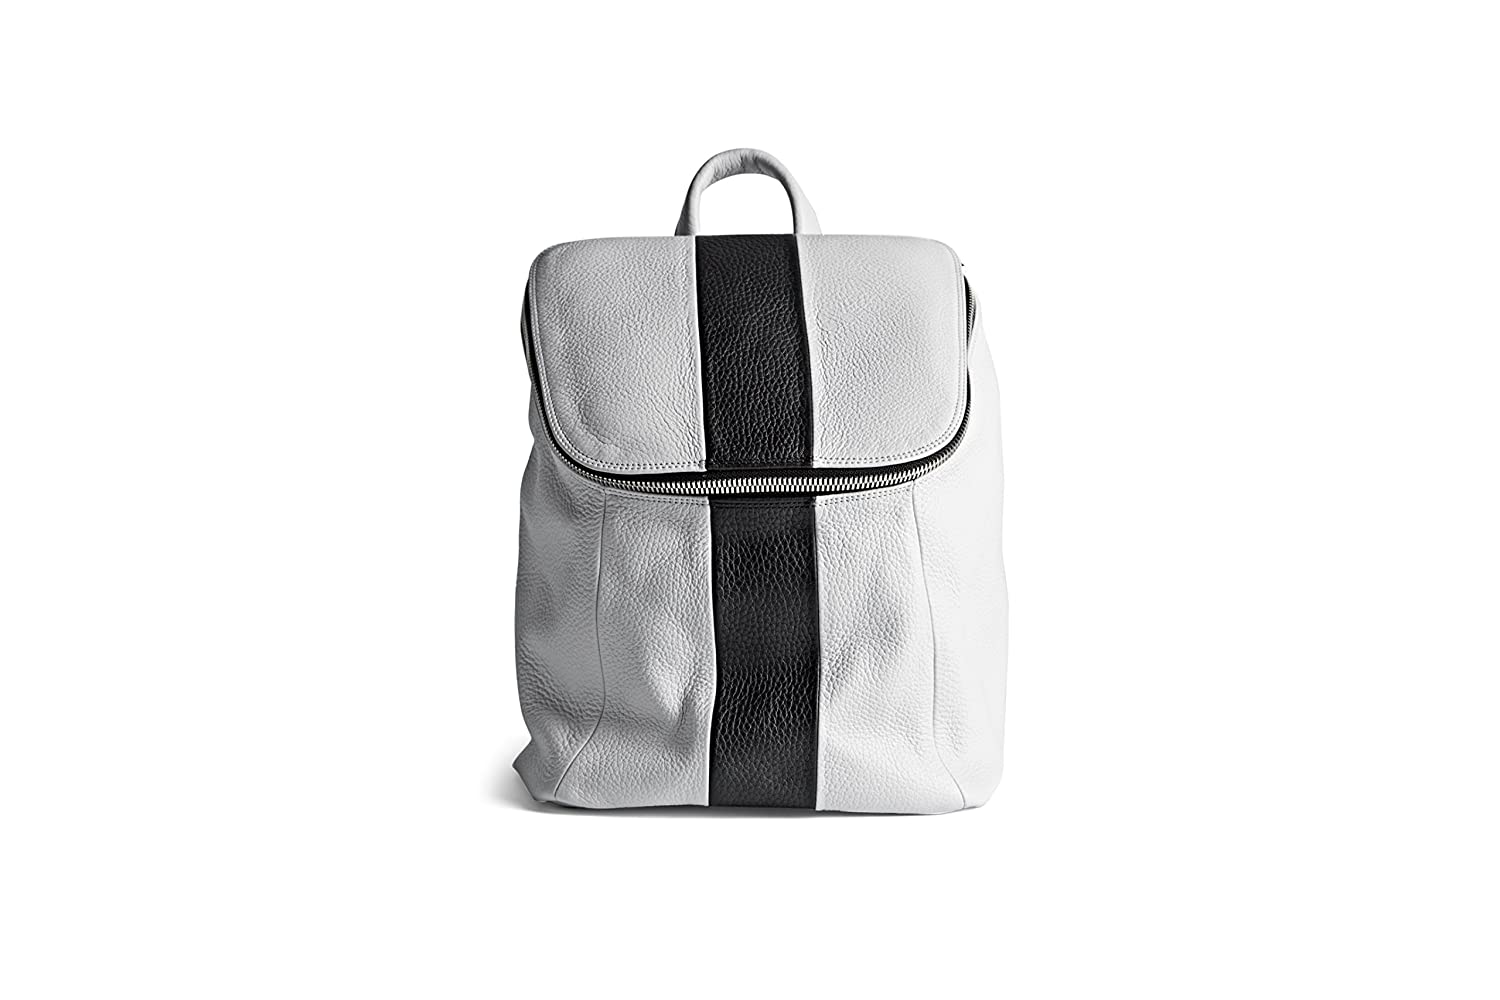 Amsterdam Girls for Travel and Business Elegant and stylish Vikele Studio Leather Backpack for Modern Women